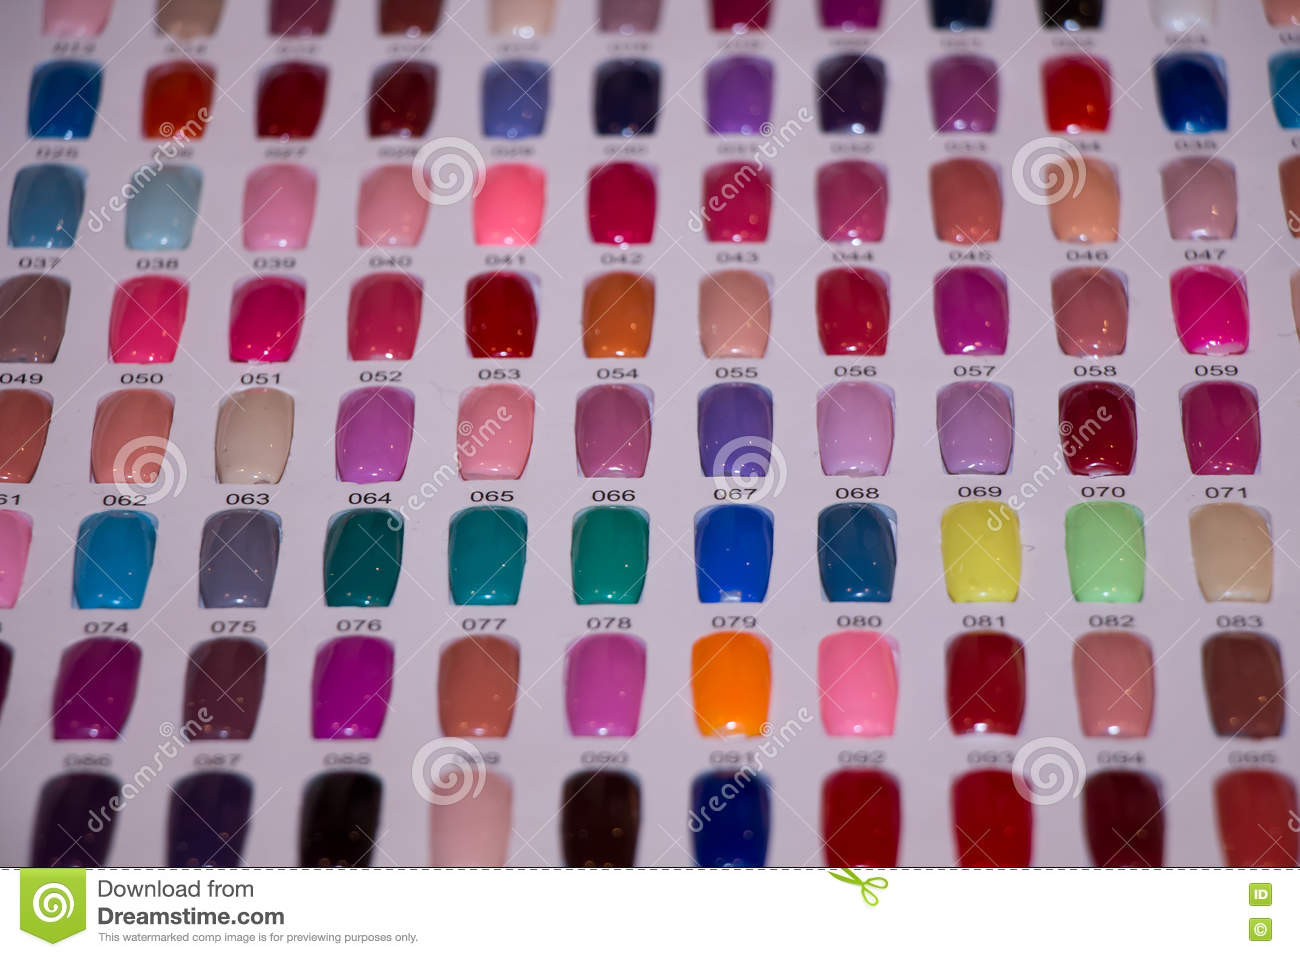 Nail art palette stock image. Image of hand, contrasts - 72798213